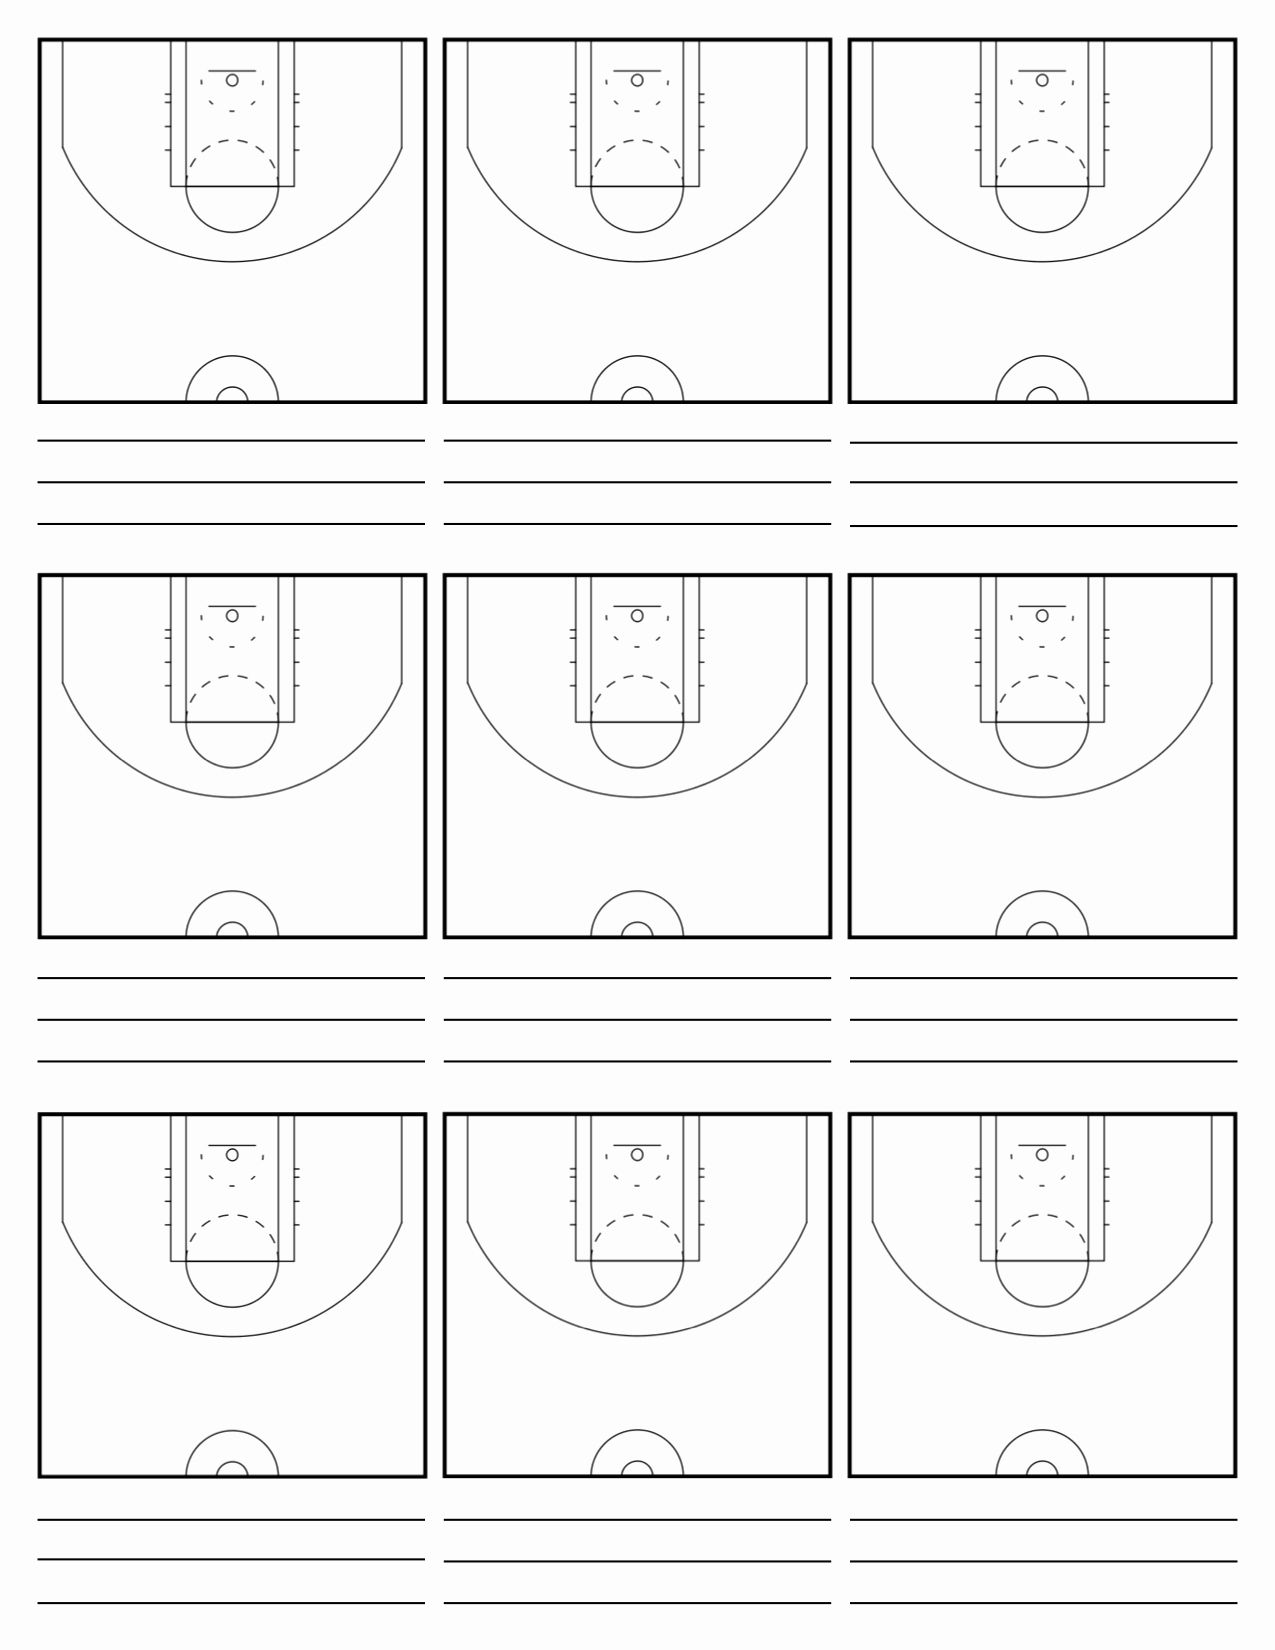 Blank Basketball Practice Plan Template Awesome 7 Best Of Basketball Court Diagrams For Plays Basketball Plays Basketball Practice Plans Basketball Practice